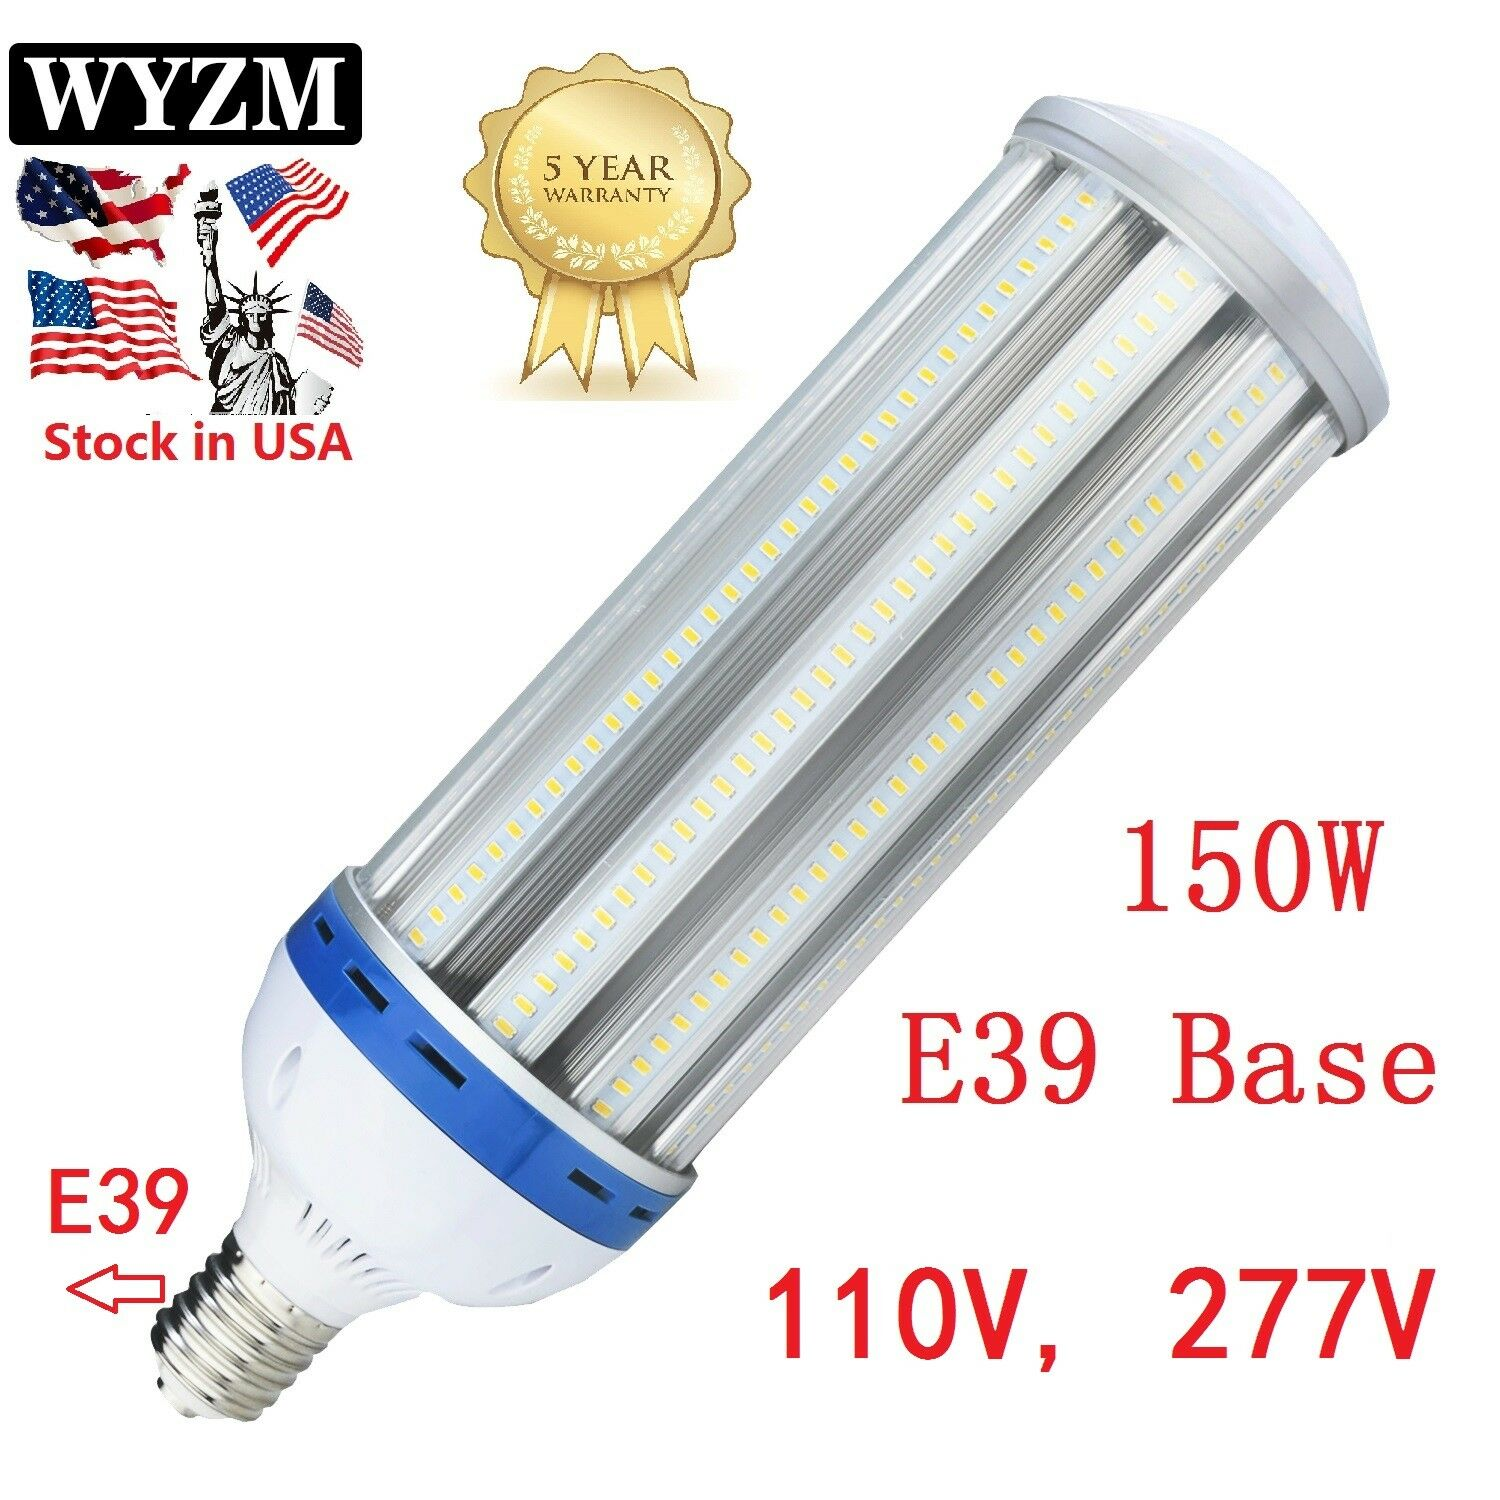 COB LED Corn Light Bulb E39 for Street Lamp Post Lighting Garage Factory 5500K